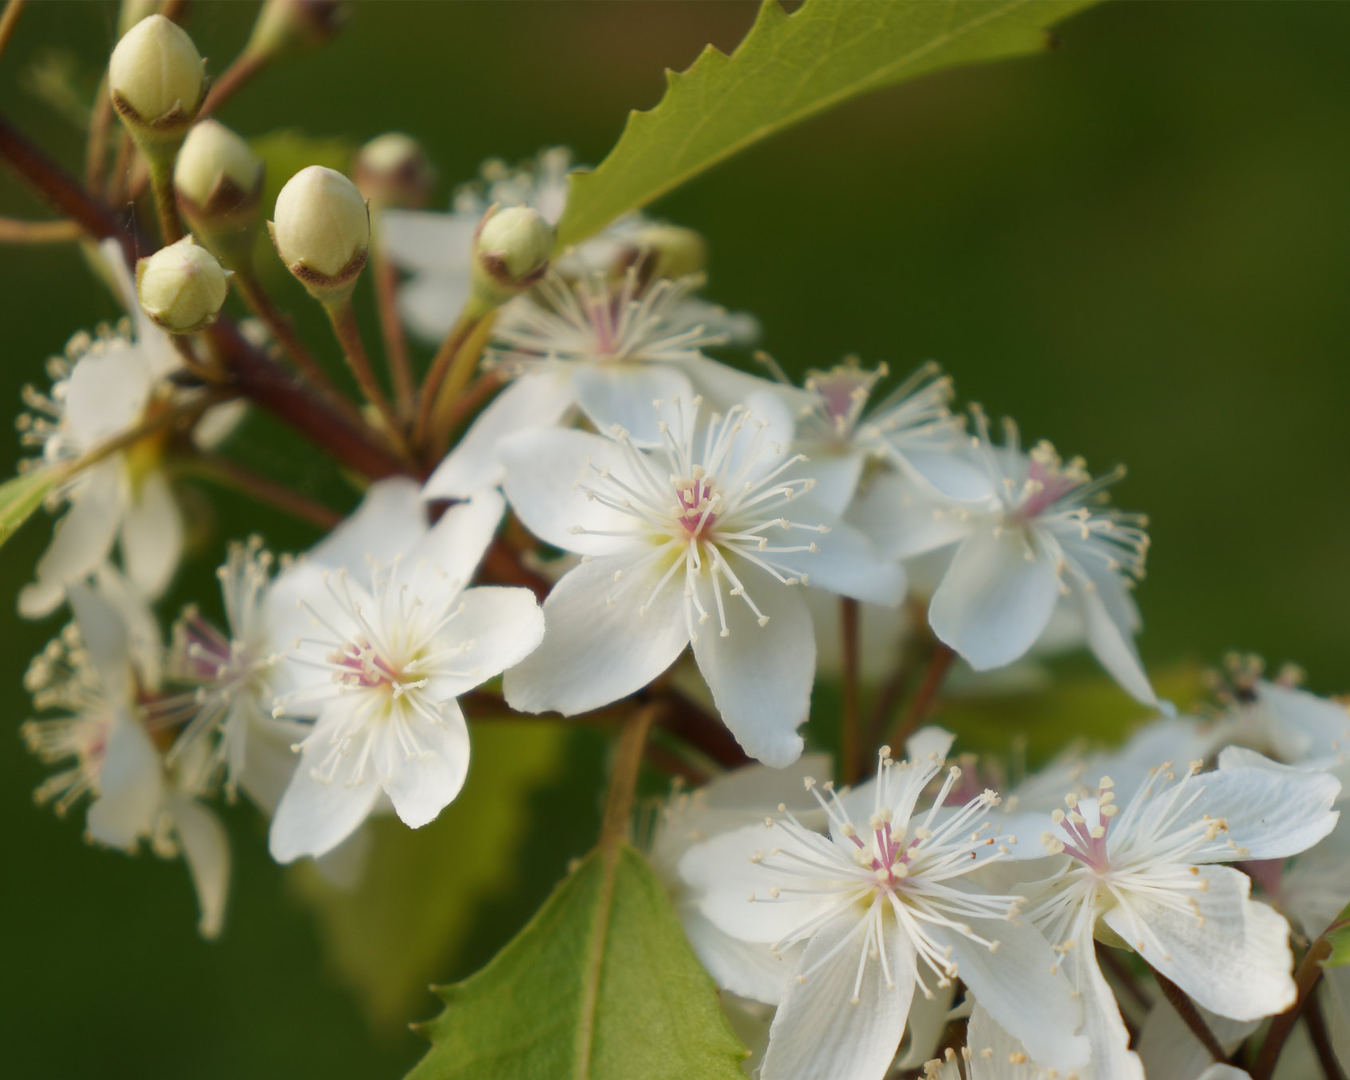 A close up of beautiful native flowers on a tree